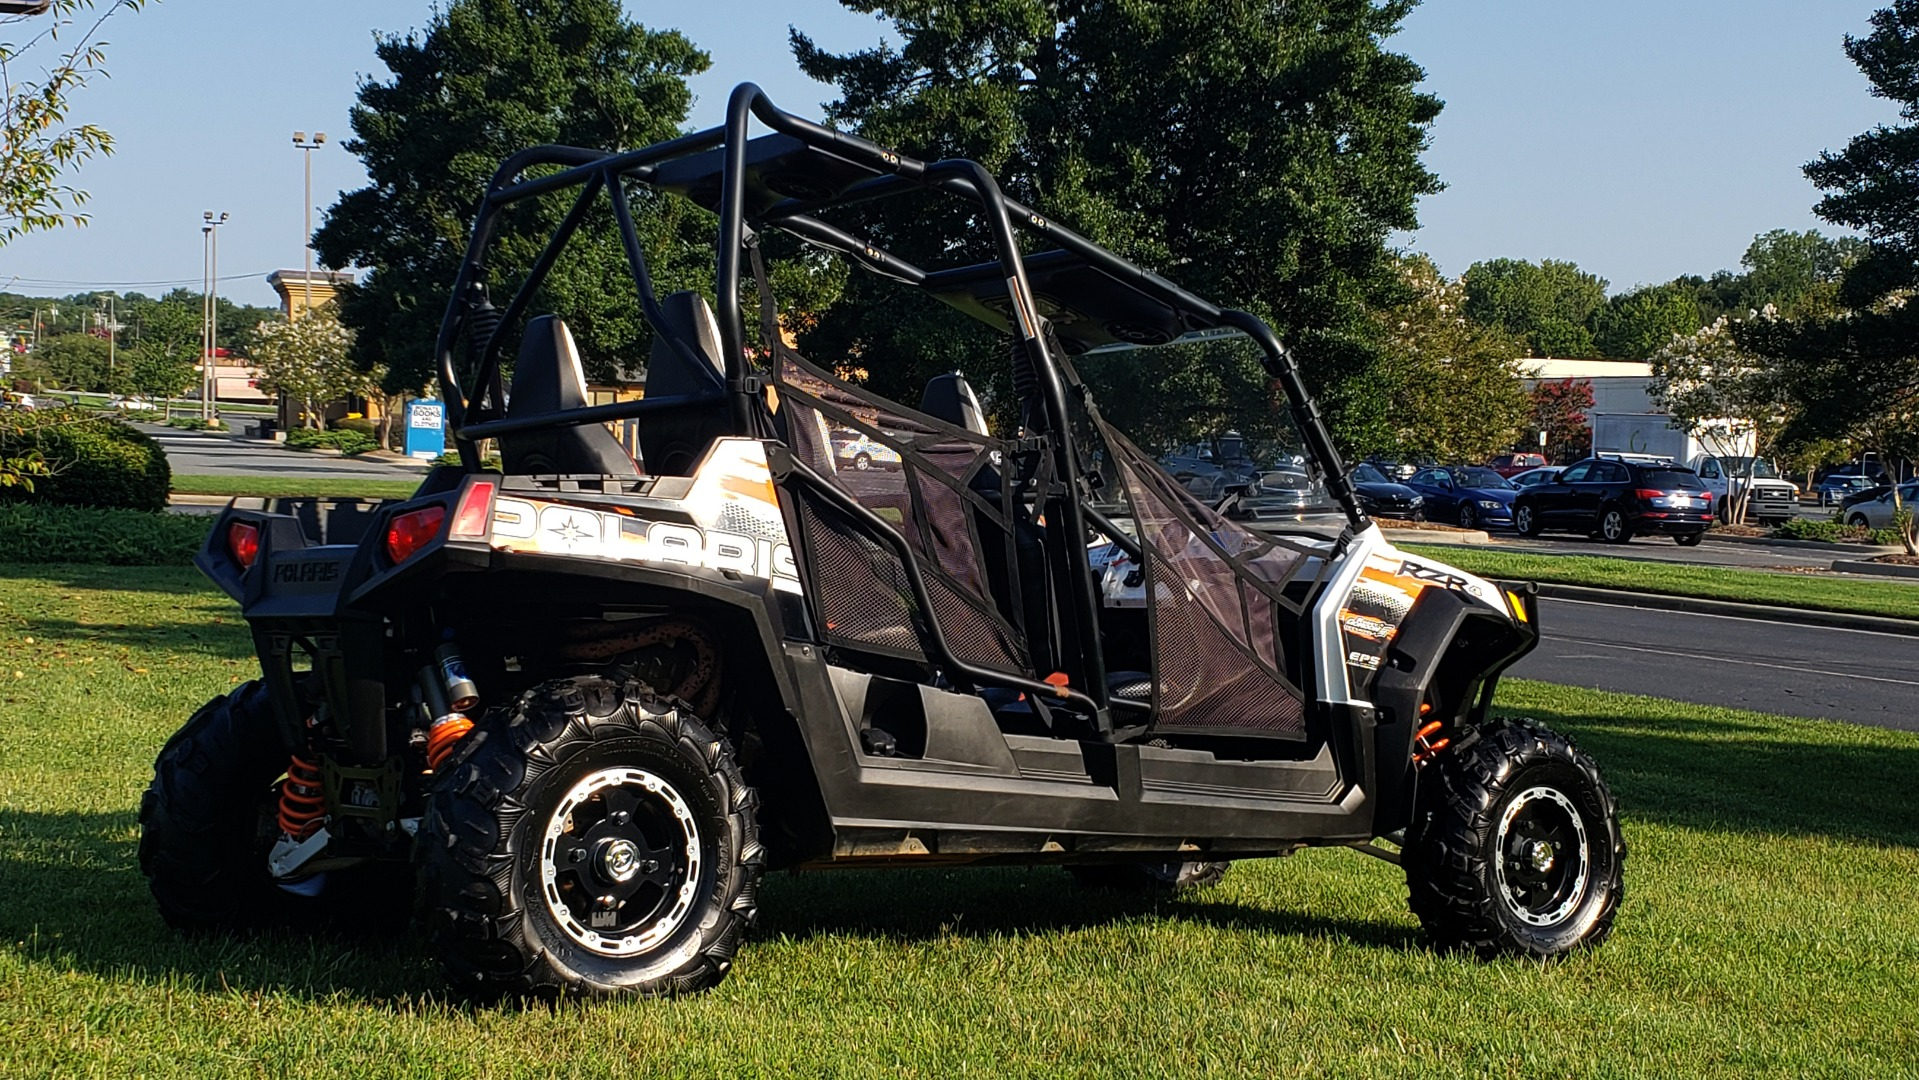 Used 2012 POLARIS RANGER RZR4 / HO 800 EFI / IPHONE CONNECT / SPEAKERS / NEW TIRES for sale Sold at Formula Imports in Charlotte NC 28227 9